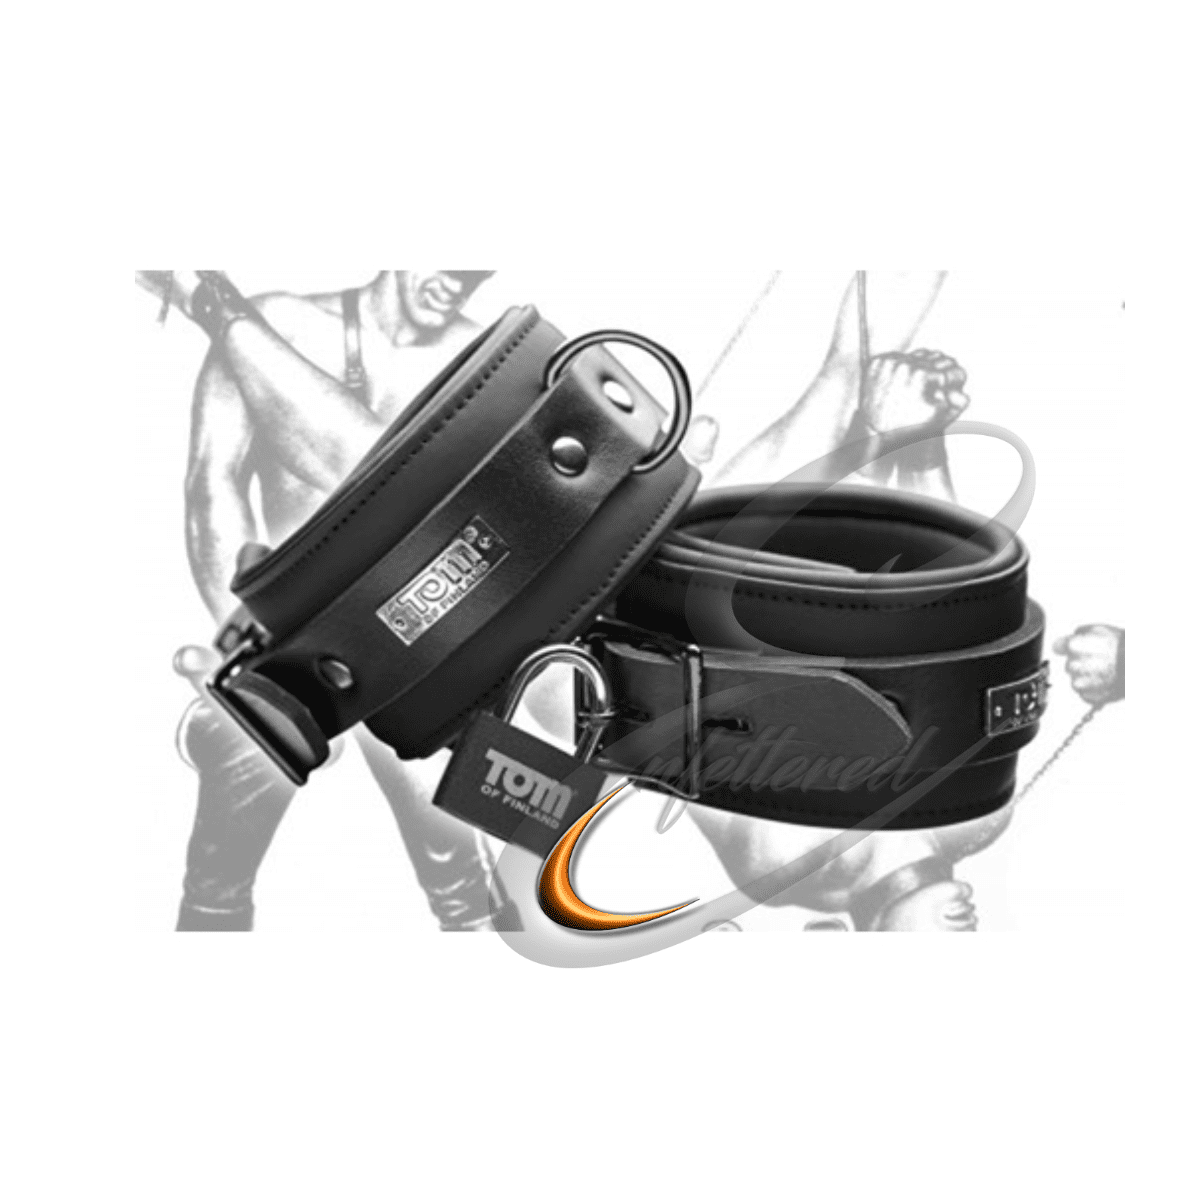 Enfettered Neoprene Ankle Cuffs by Tom of Finland